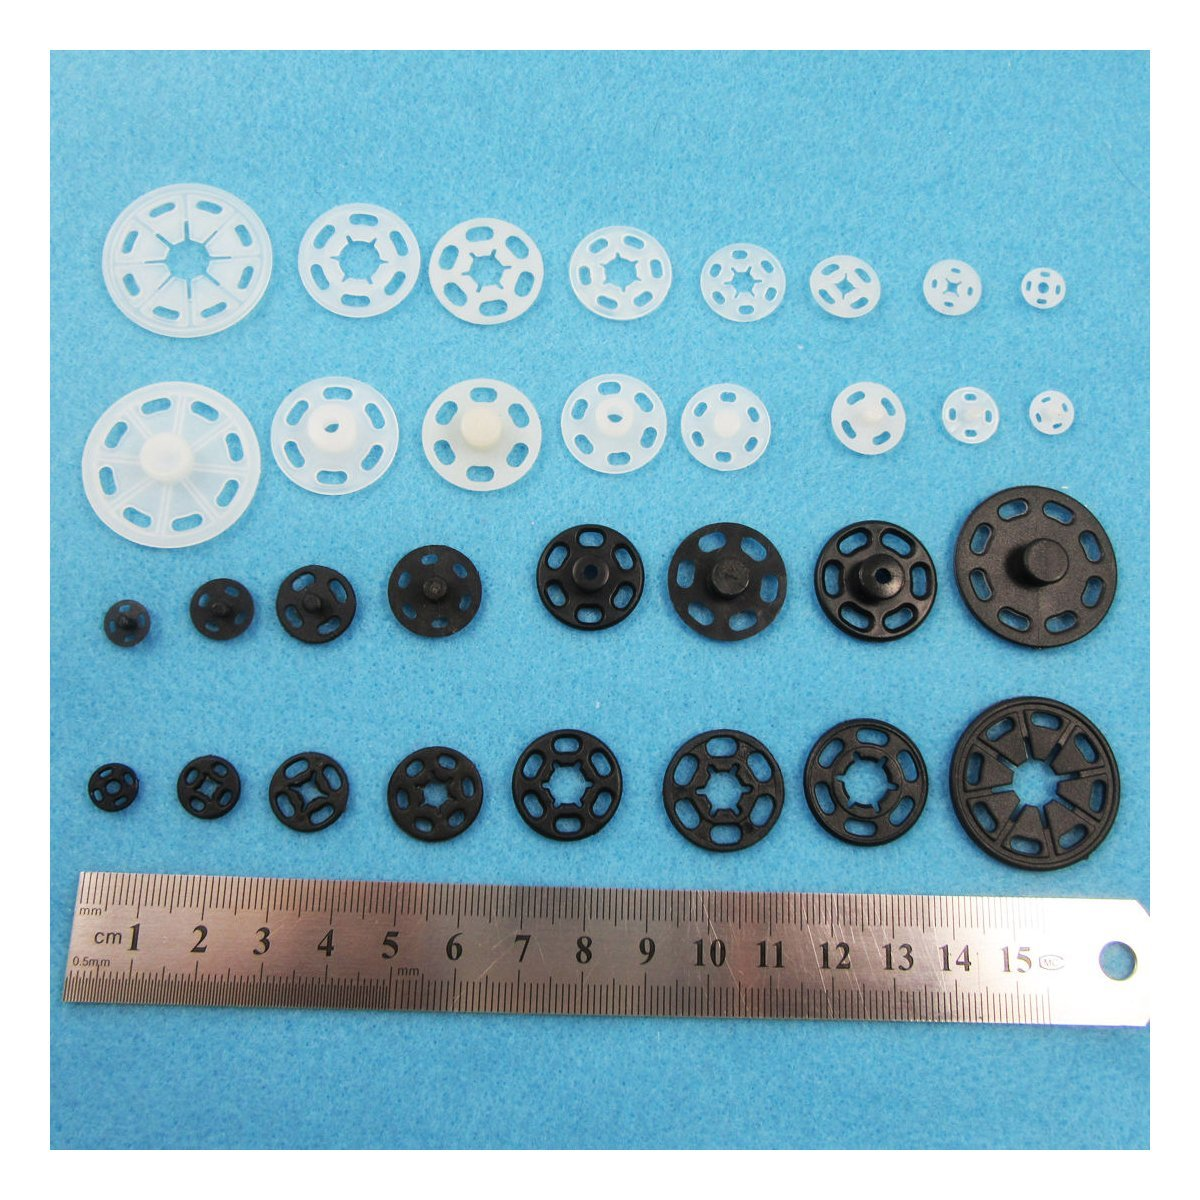 BLACK OR WHITE SEW ON SNAP FASTENERS POPPER PRESS STUDS 8 SIZES (8mm (25 sets) H2349, Black) BEADS4CRAFTS